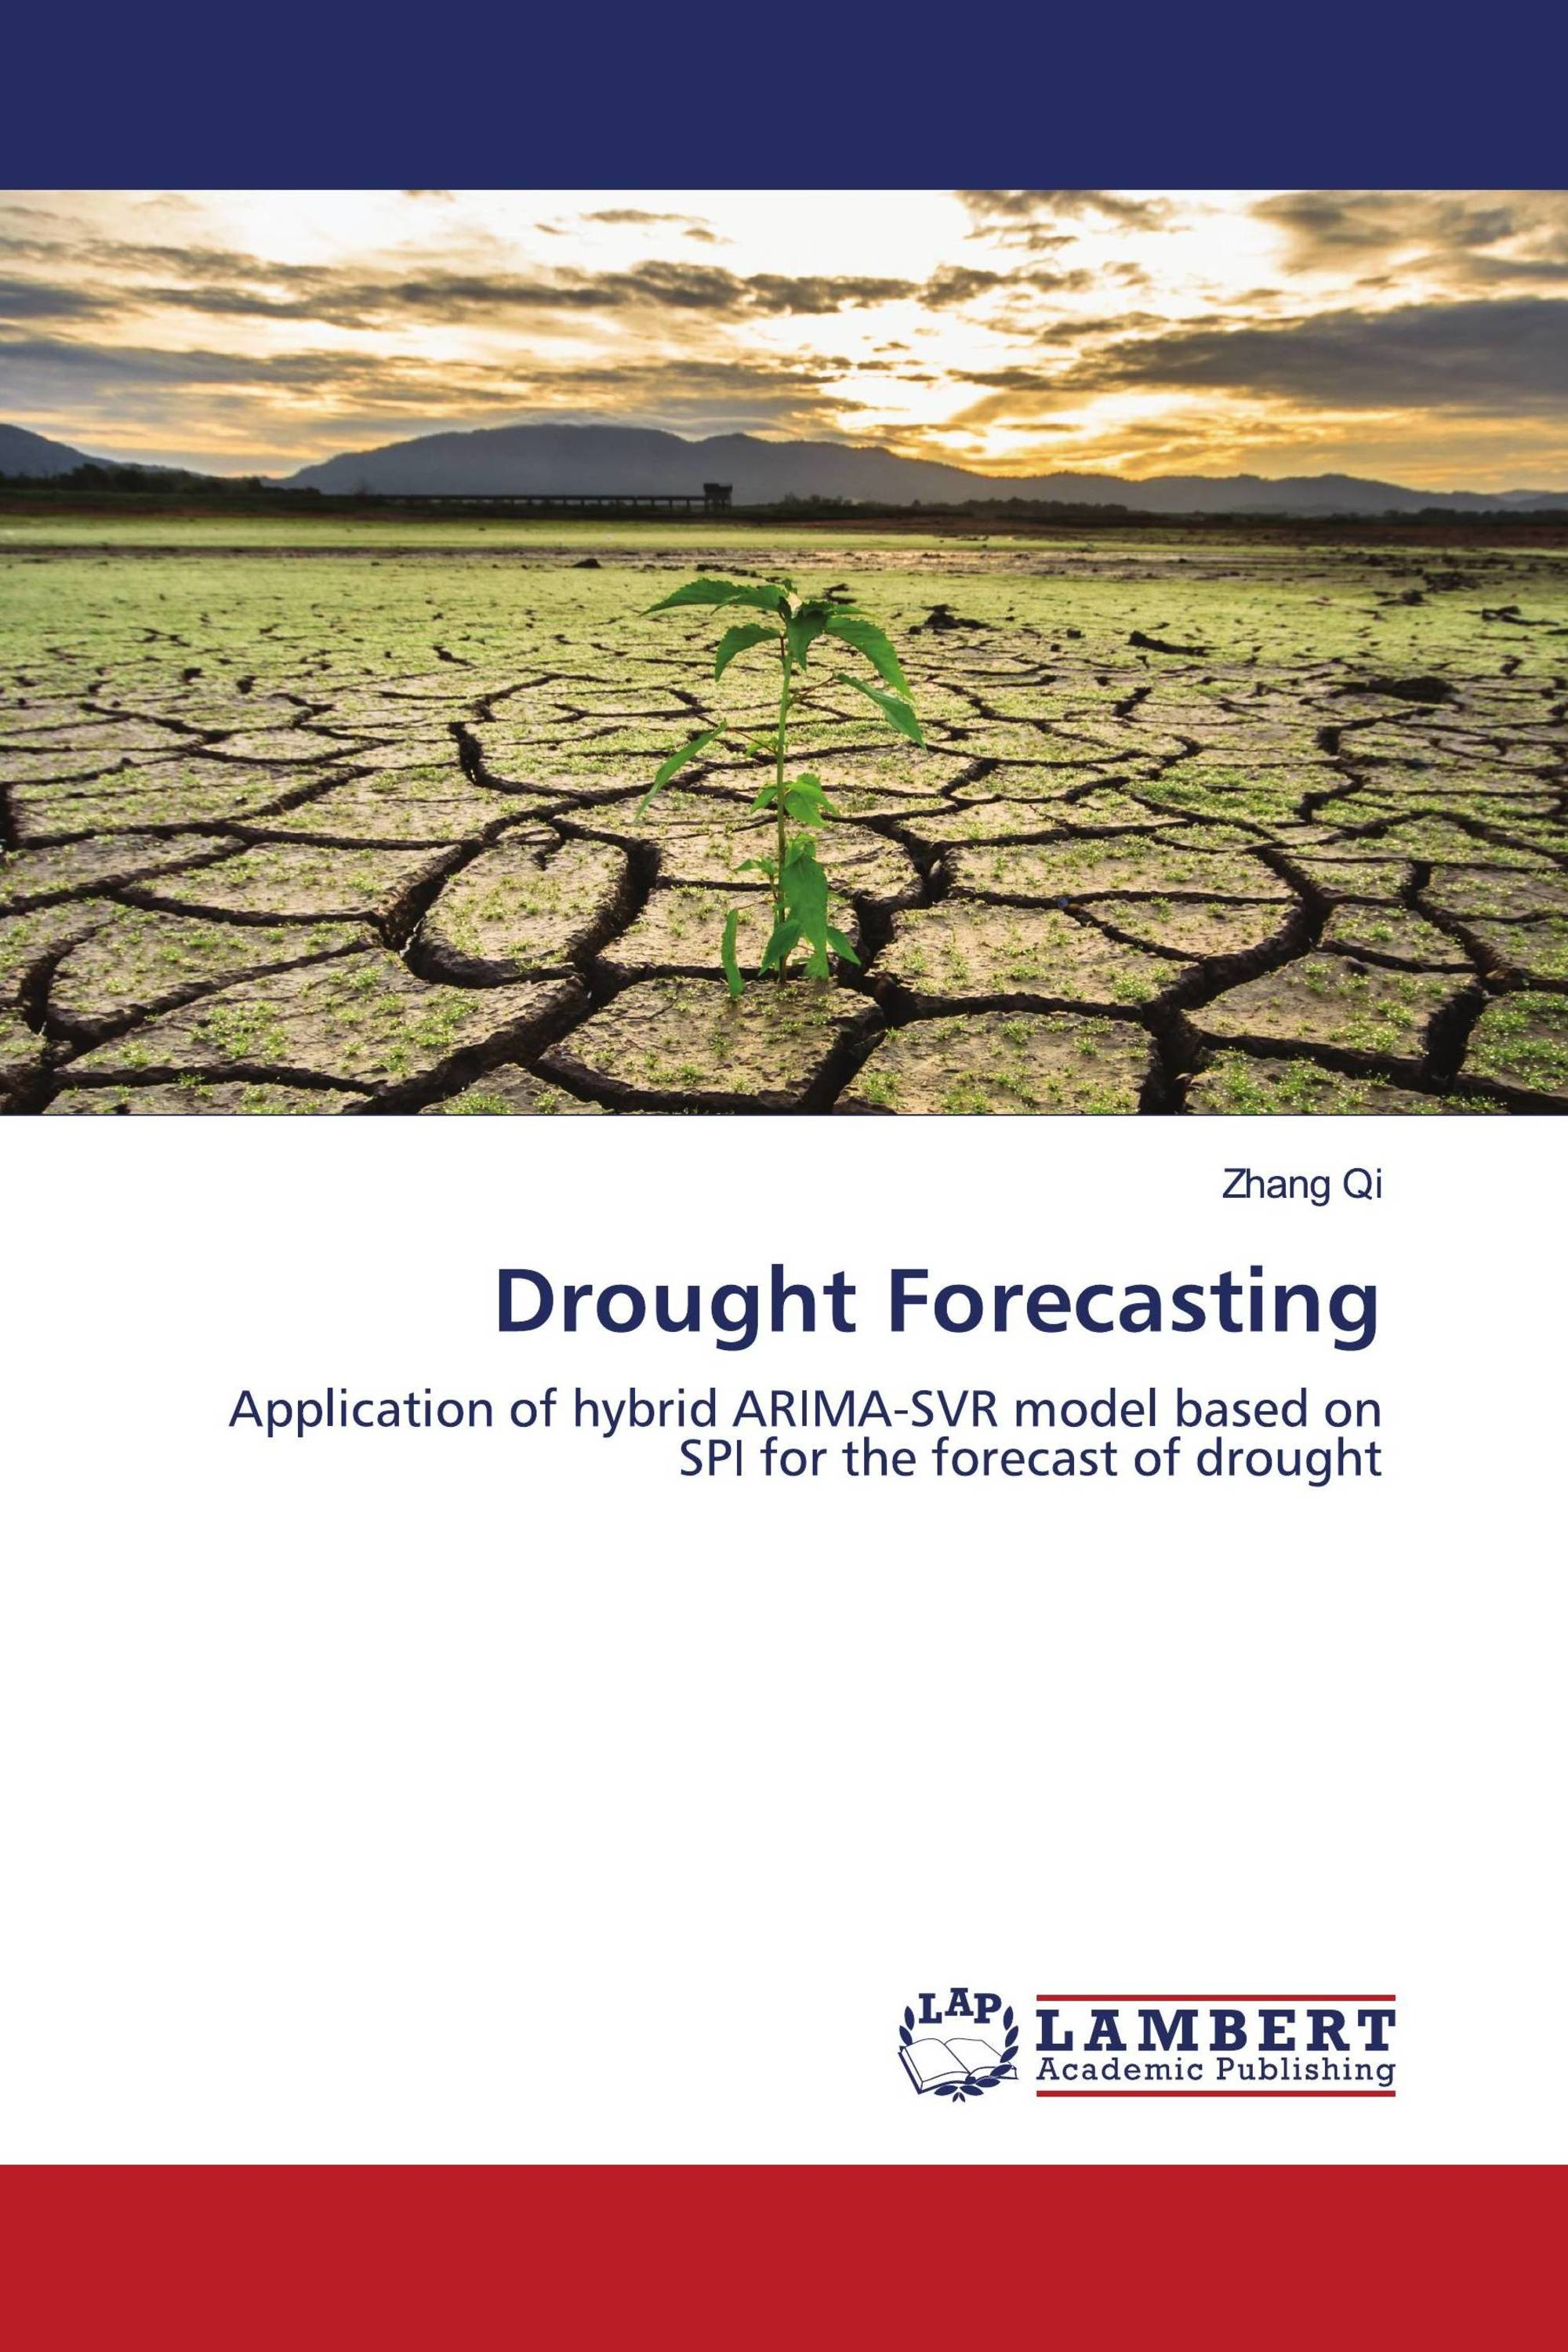 Drought Forecasting